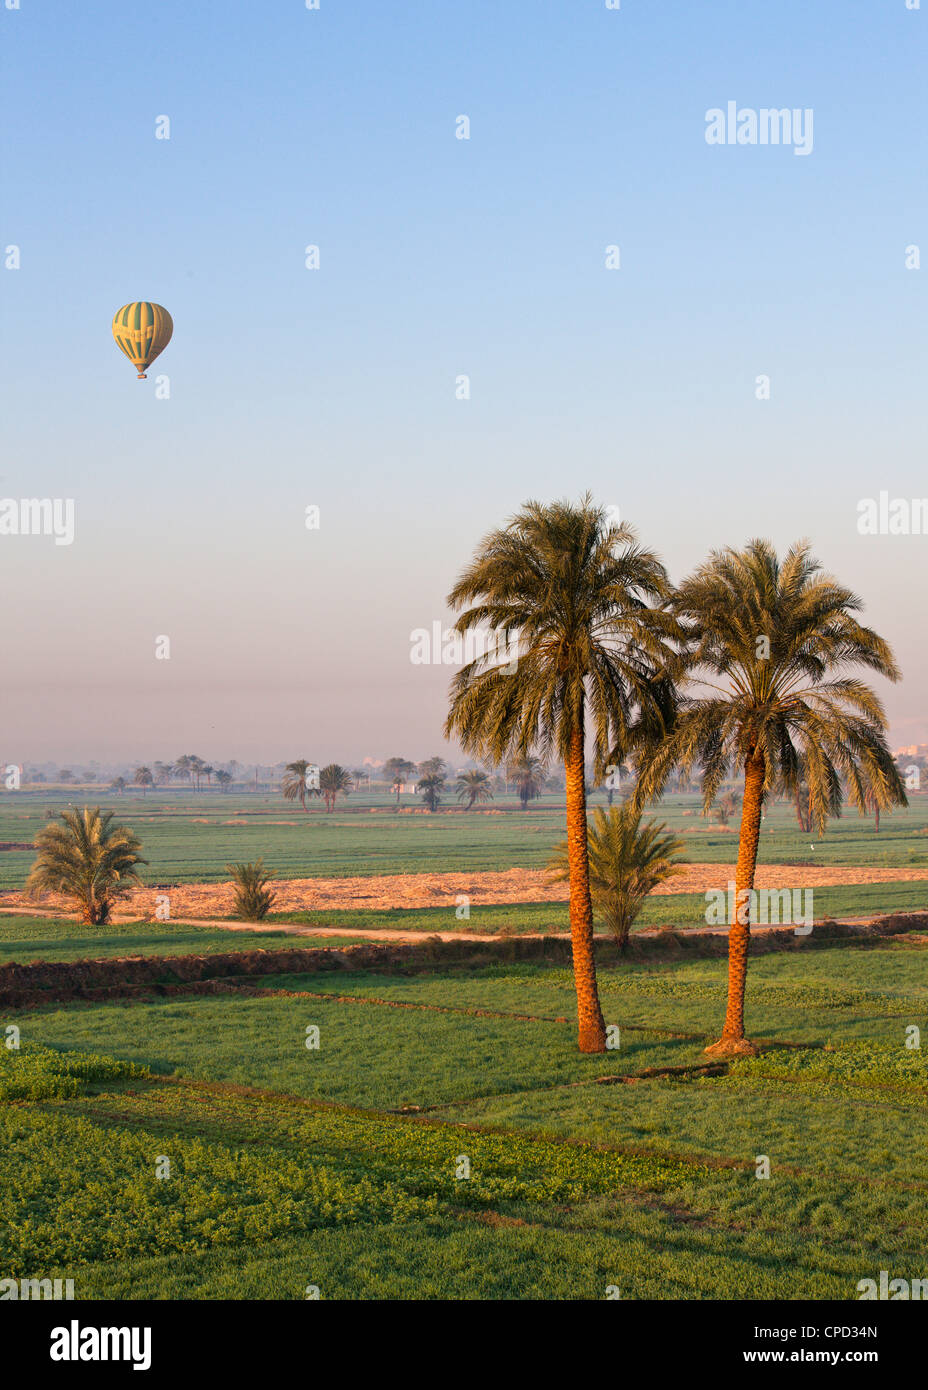 Hot air balloon suspended over green fields and palm trees near Luxor, Thebes, Egypt, North Africa, Africa - Stock Image